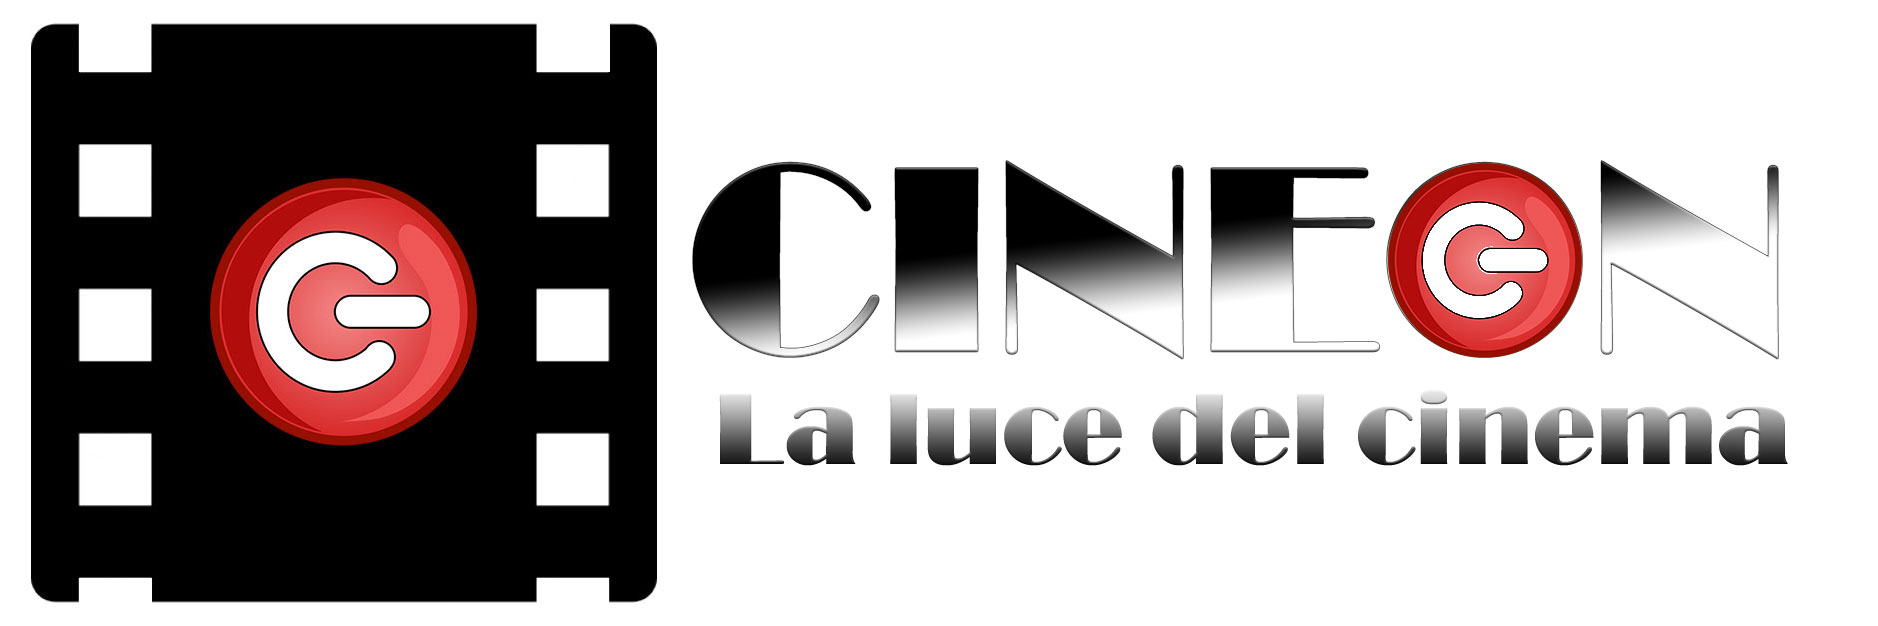 Cineon.it logo